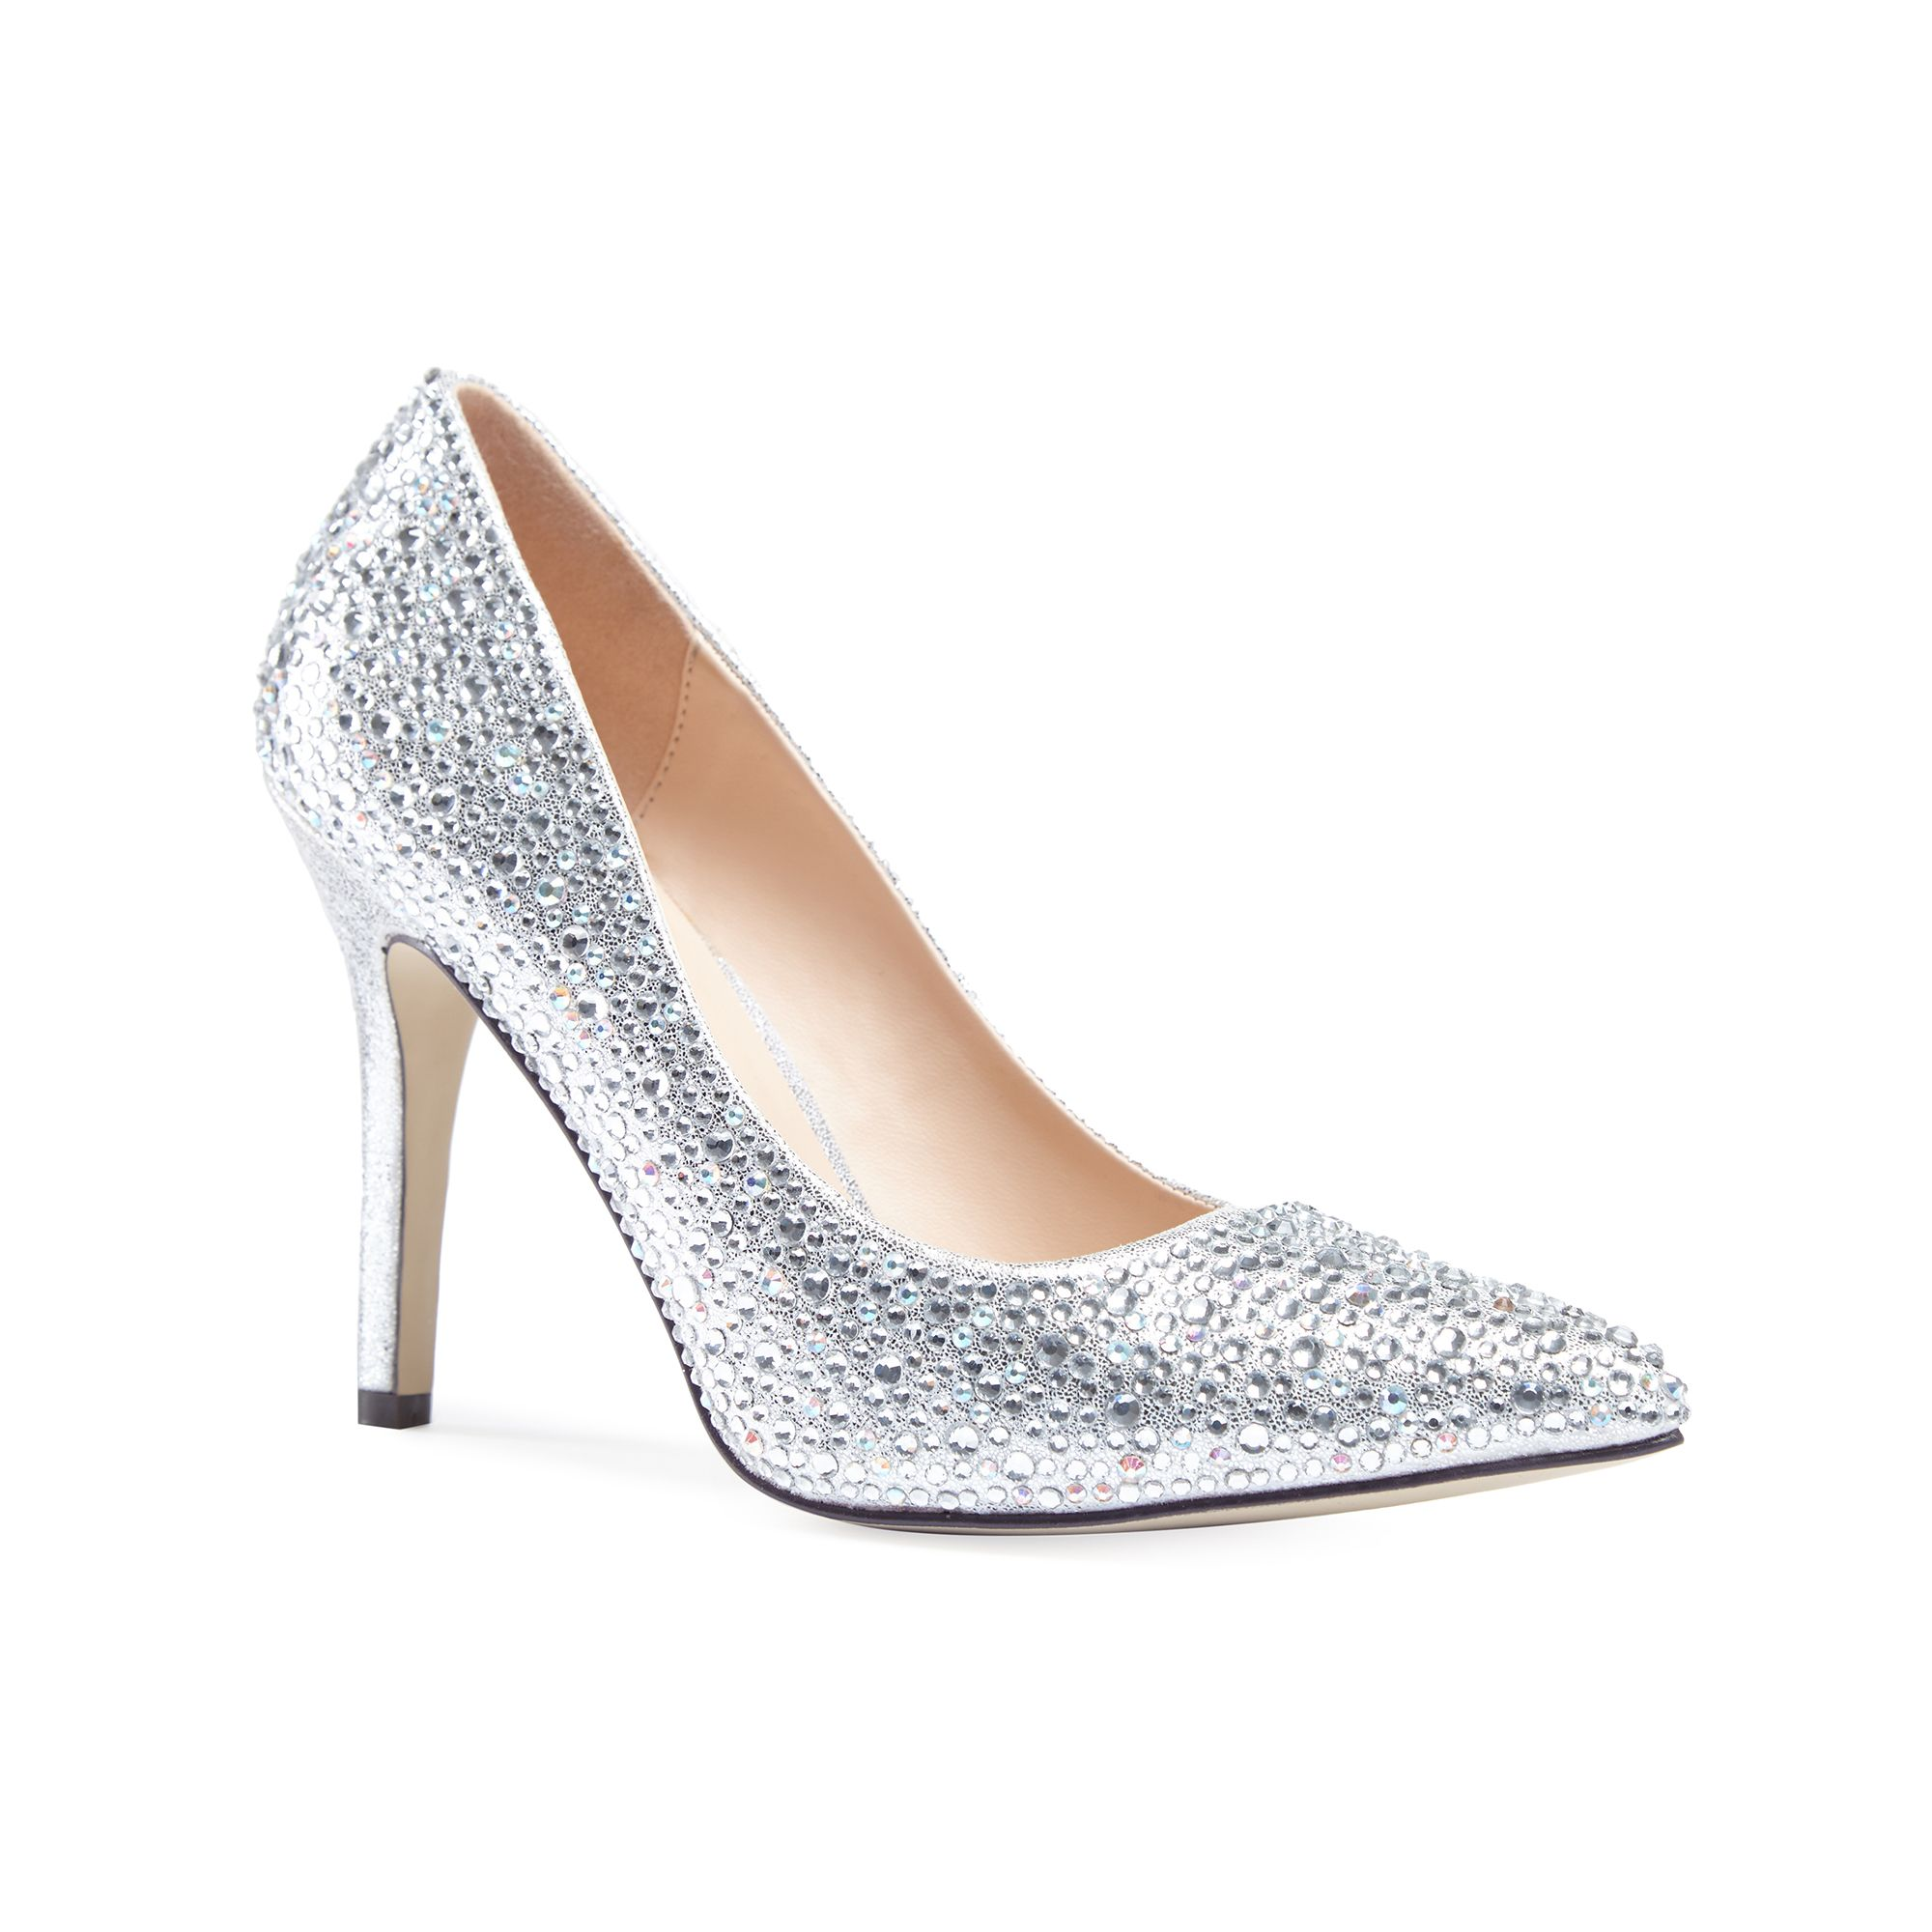 Paradox London Pink Paradox London Pink Aiesha crystal embellished court shoes, Silver